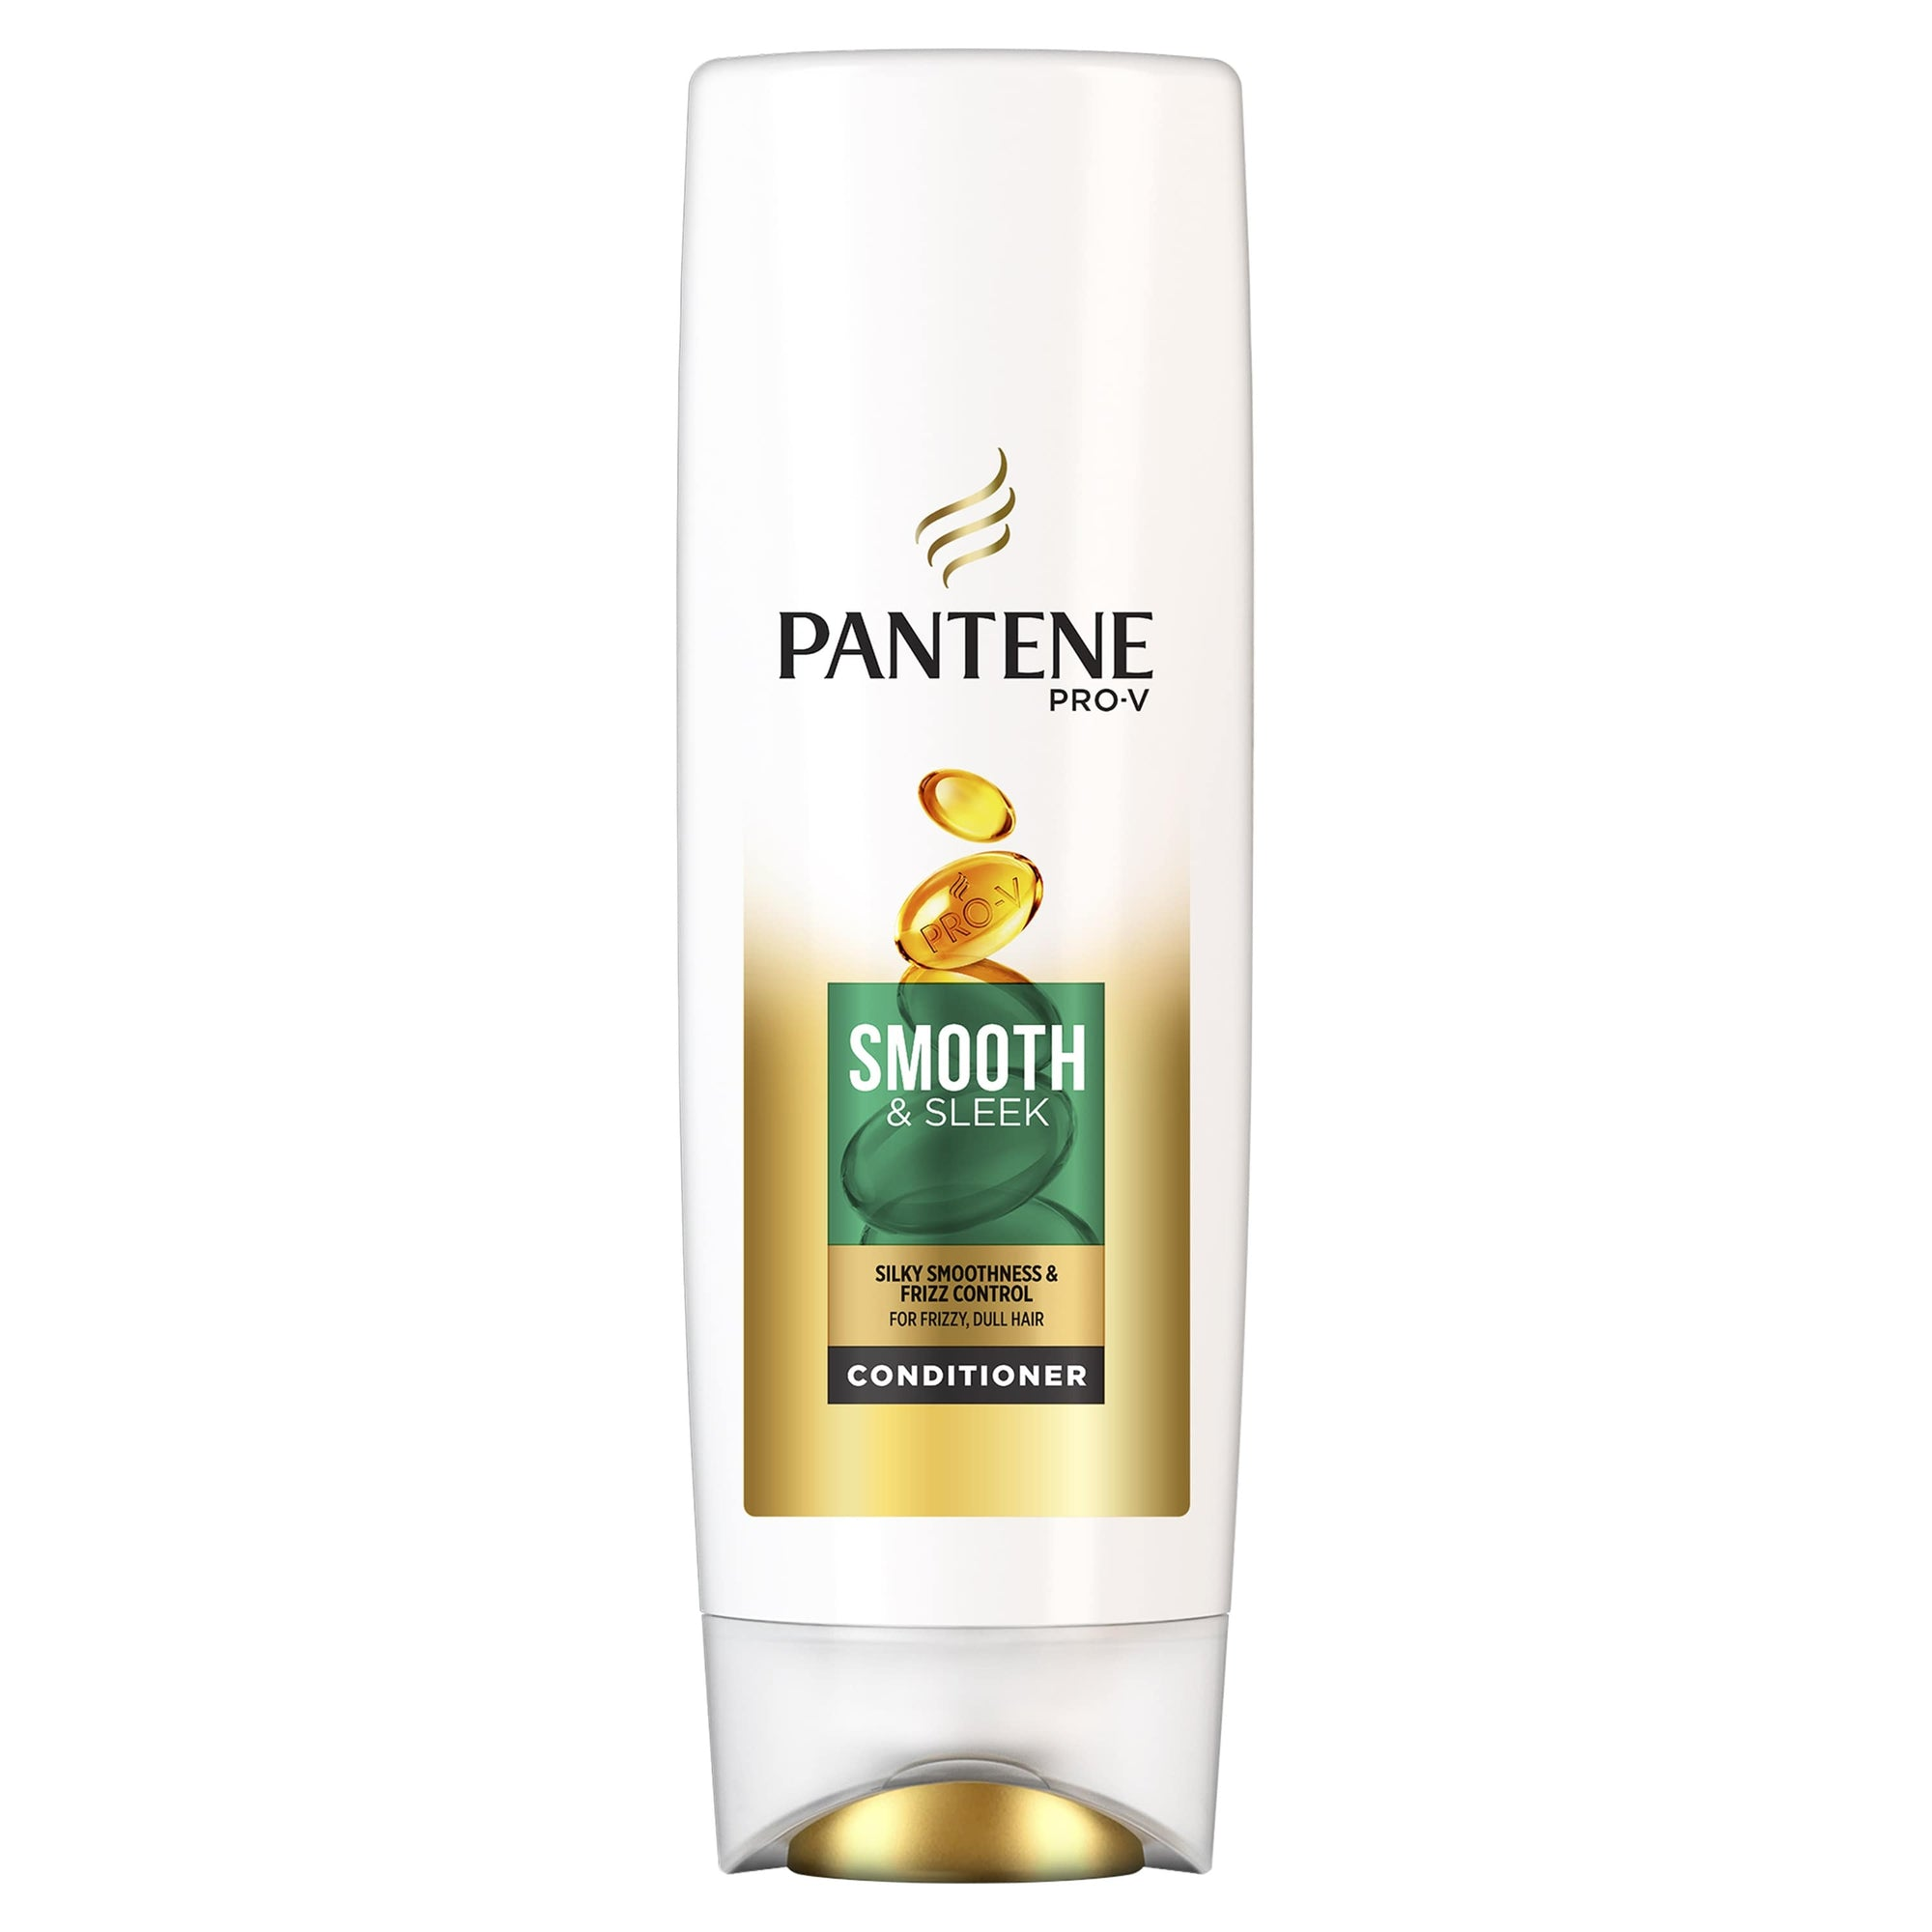 Pantene Smooth & Sleek Conditioner 360ML